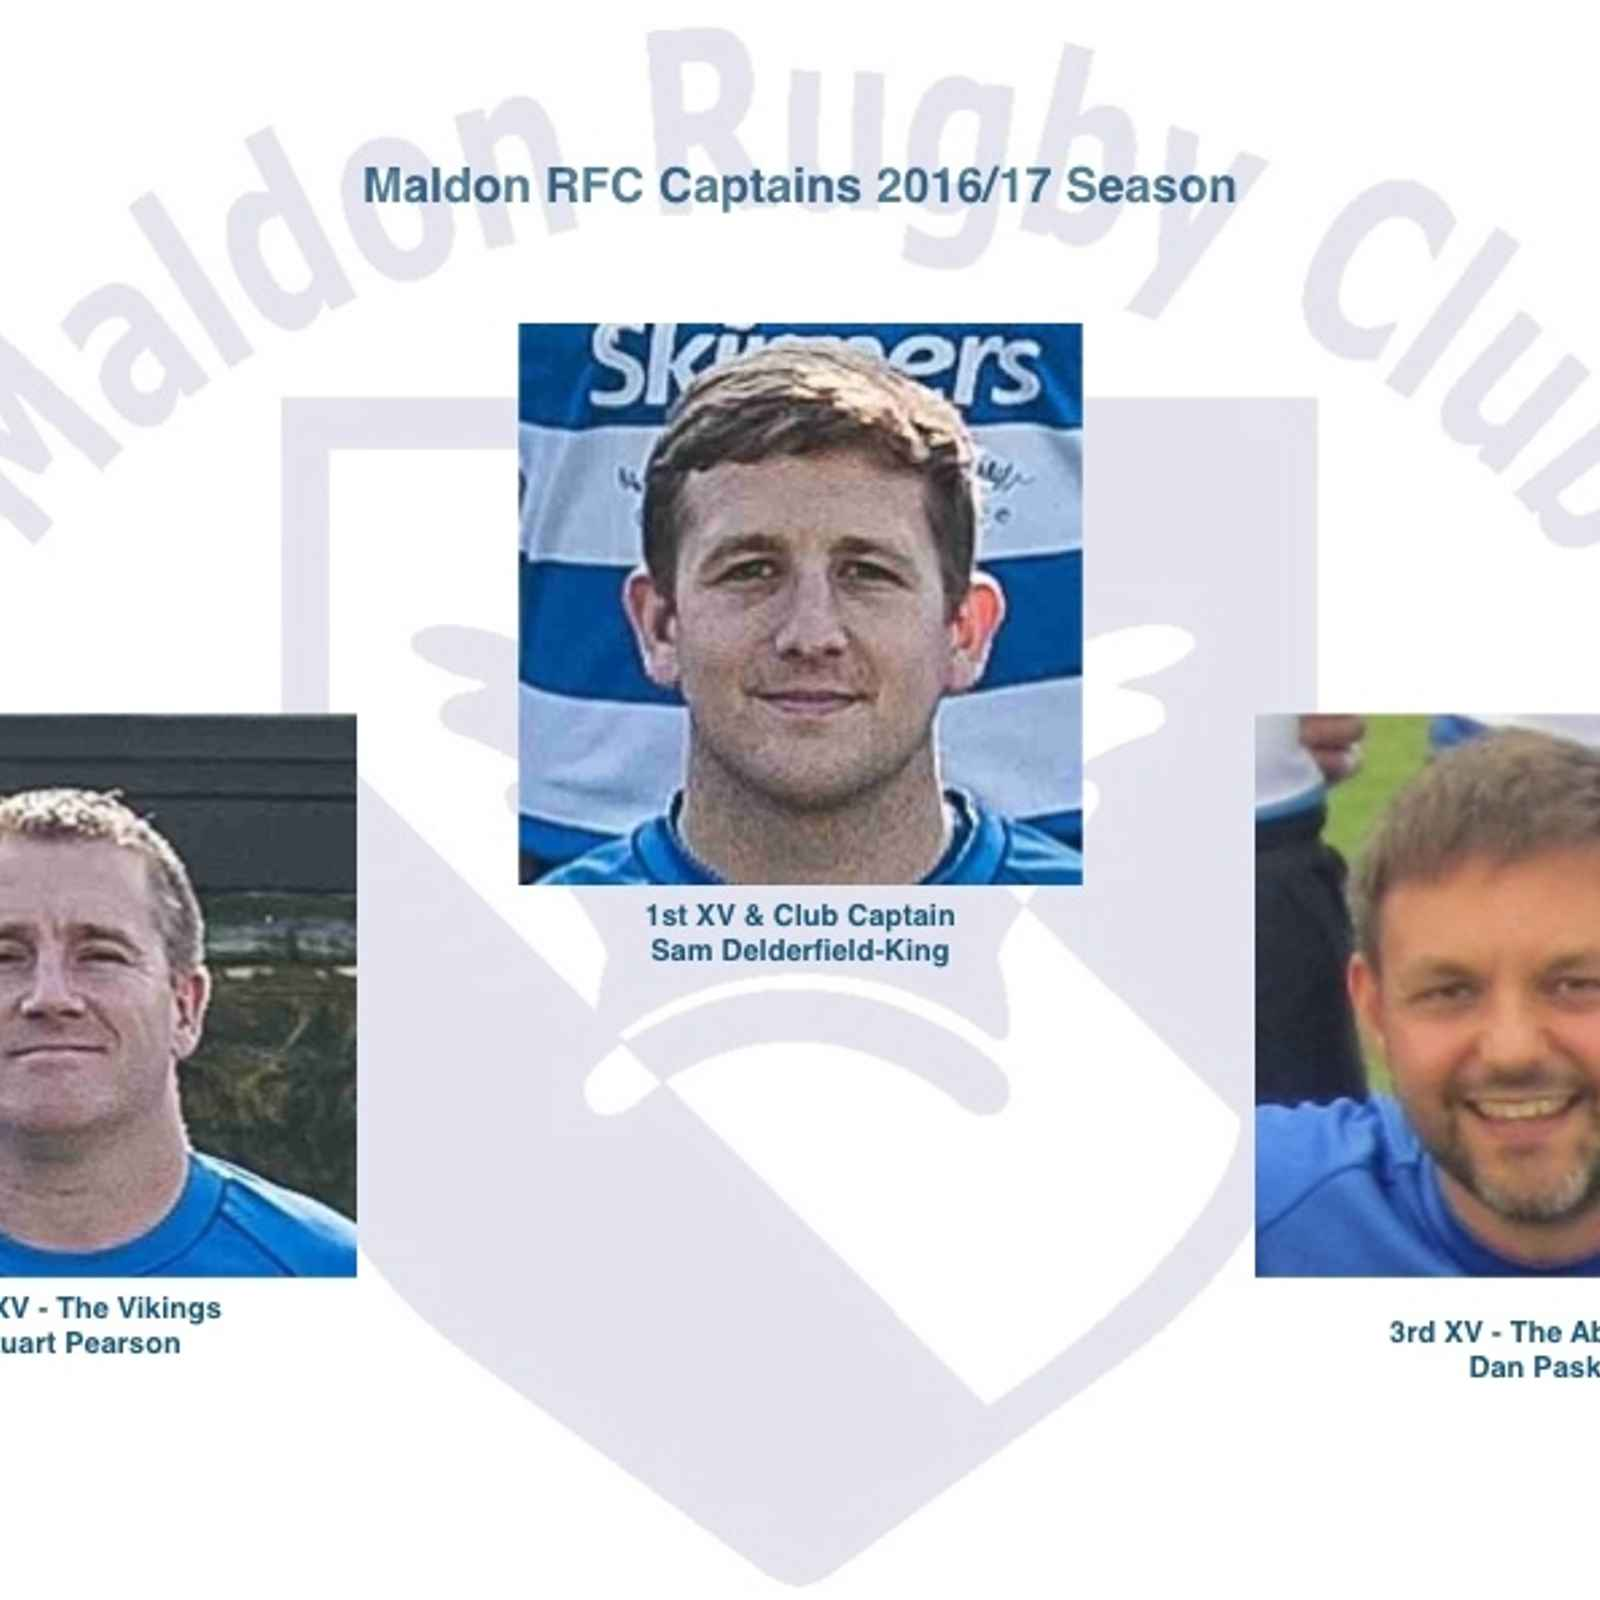 Captains for the 2016/17 Season